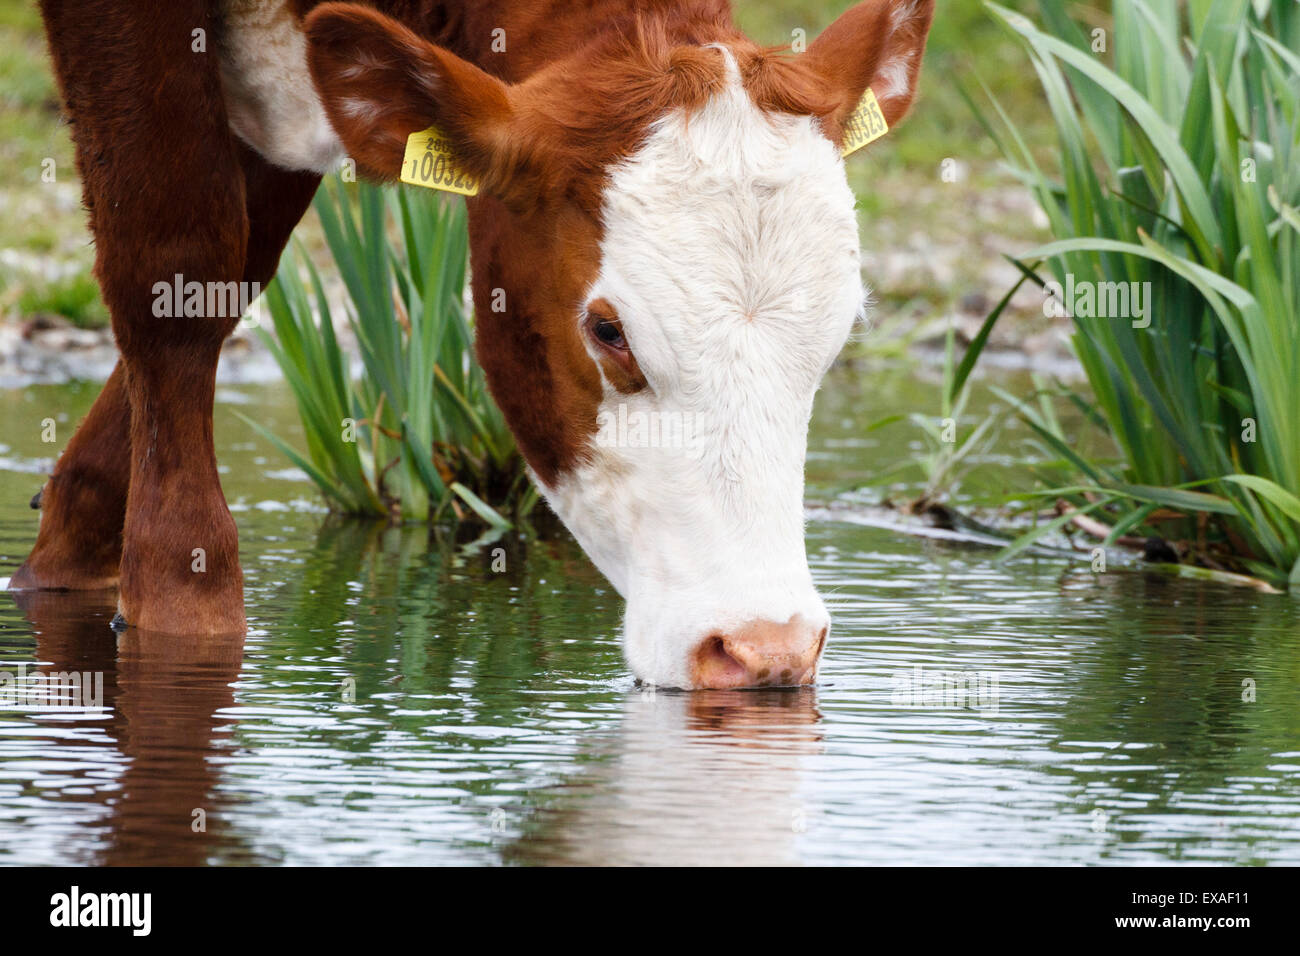 Cow drinking from the River Colne, Surrey, England, UK - Stock Image